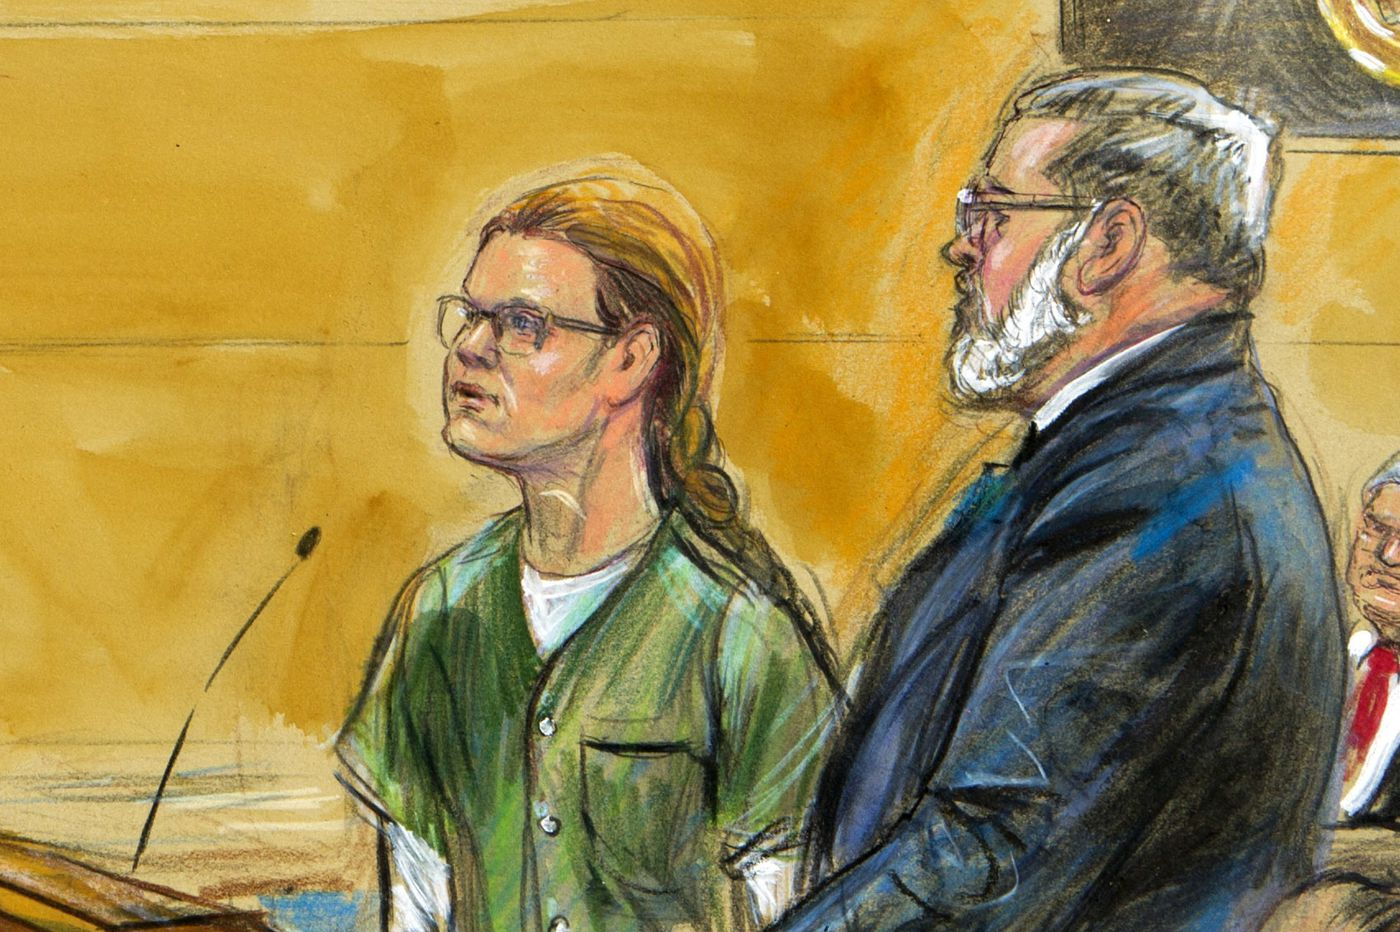 In filing intended to be under seal, prosecutors ask to transport Maria Butina